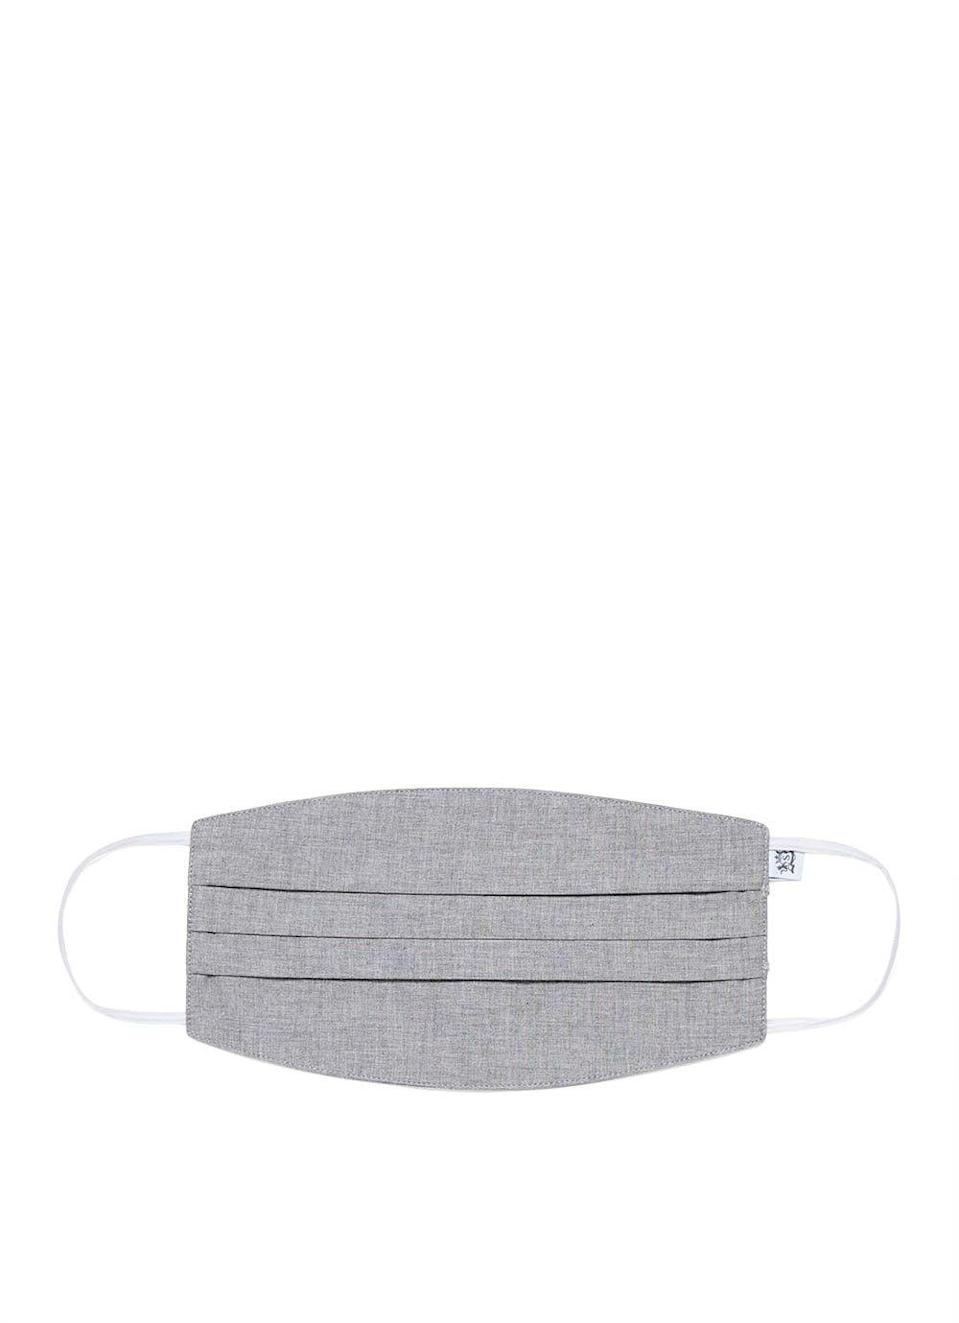 """<p>sunspel.com</p><p><strong>$15.00</strong></p><p><a href=""""https://www.sunspel.com/us/sunspel-cotton-face-mask-in-mid-grey-melange.html"""" rel=""""nofollow noopener"""" target=""""_blank"""" data-ylk=""""slk:BUY IT HERE"""" class=""""link rapid-noclick-resp"""">BUY IT HERE</a></p><p><a href=""""https://www.menshealth.com/style/a30609988/sunspel-t-shirt-review/"""" rel=""""nofollow noopener"""" target=""""_blank"""" data-ylk=""""slk:One of our go-to T-Shirt brands"""" class=""""link rapid-noclick-resp"""">One of our go-to T-Shirt brands</a> is now producing face masks with with an anti-bacterial inner lining. The brand has already donated 500 masks to those in need in Yorkshire, England and will continue to donate another 7,500 masks. </p>"""